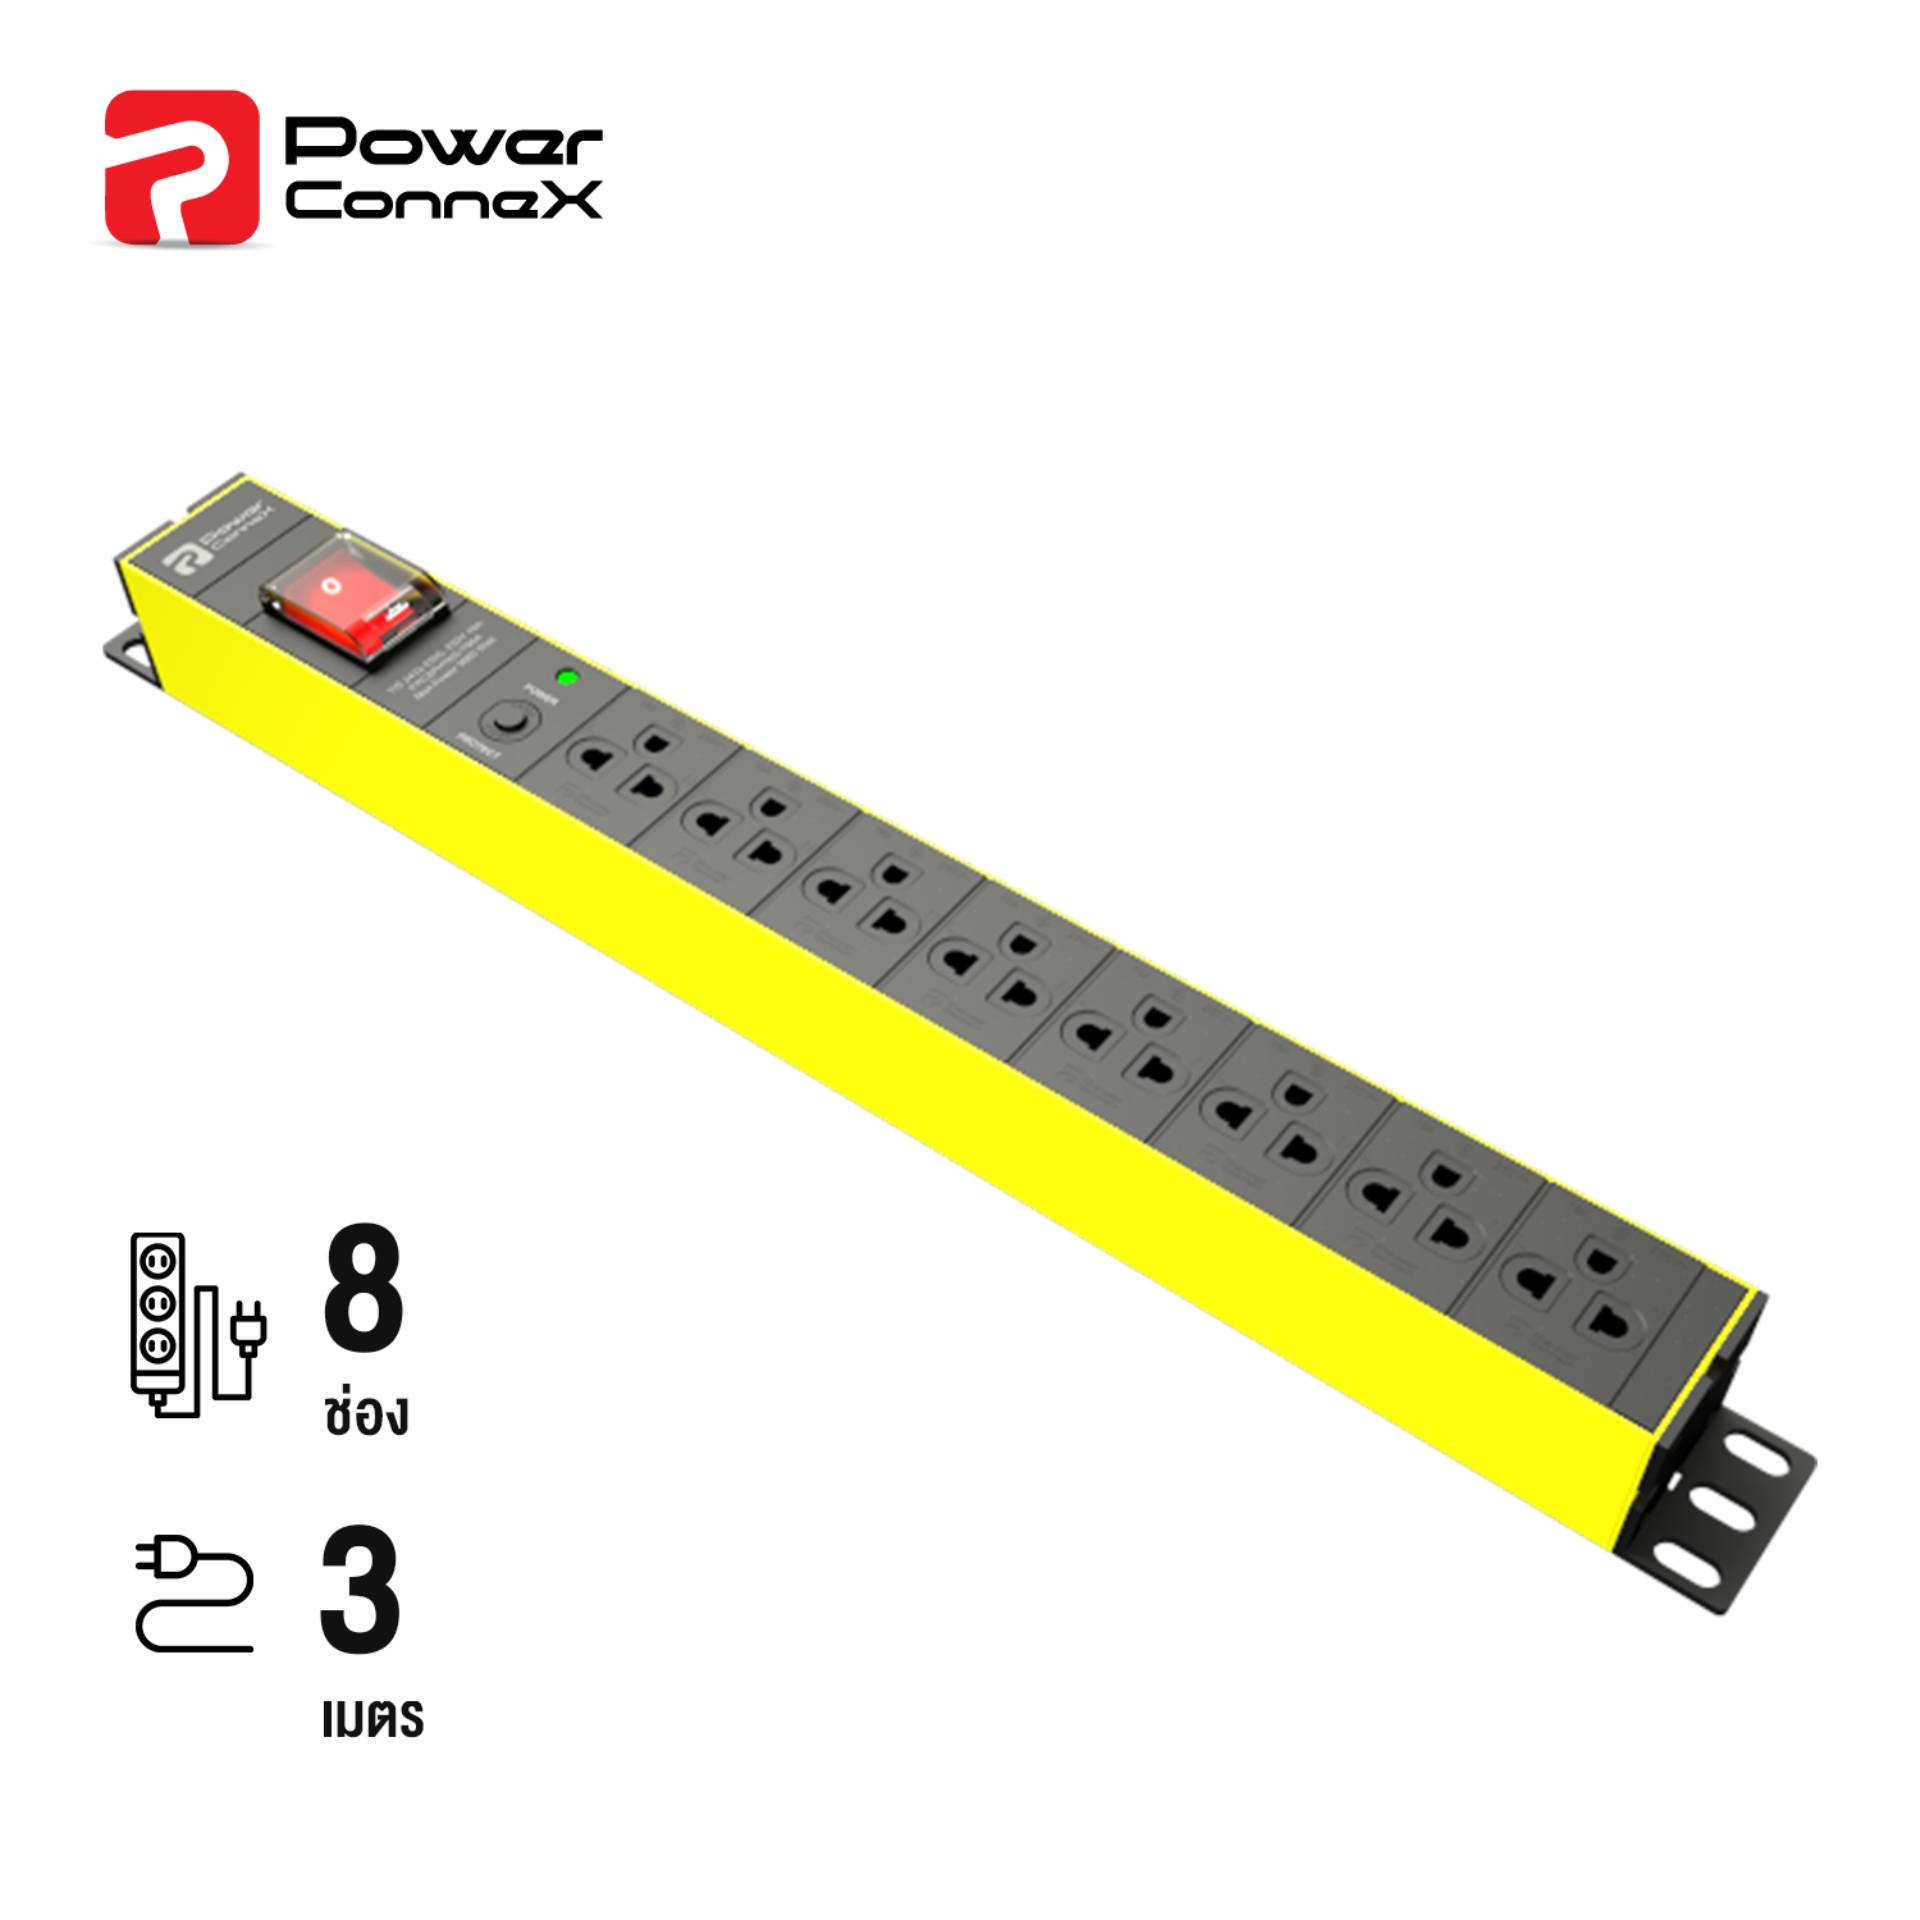 Powerconnex (yellow) 8xtis Outlets, With Surge Protection, Master Switch & Overload Protection (pcx-Pxc5phtts-Ts08).